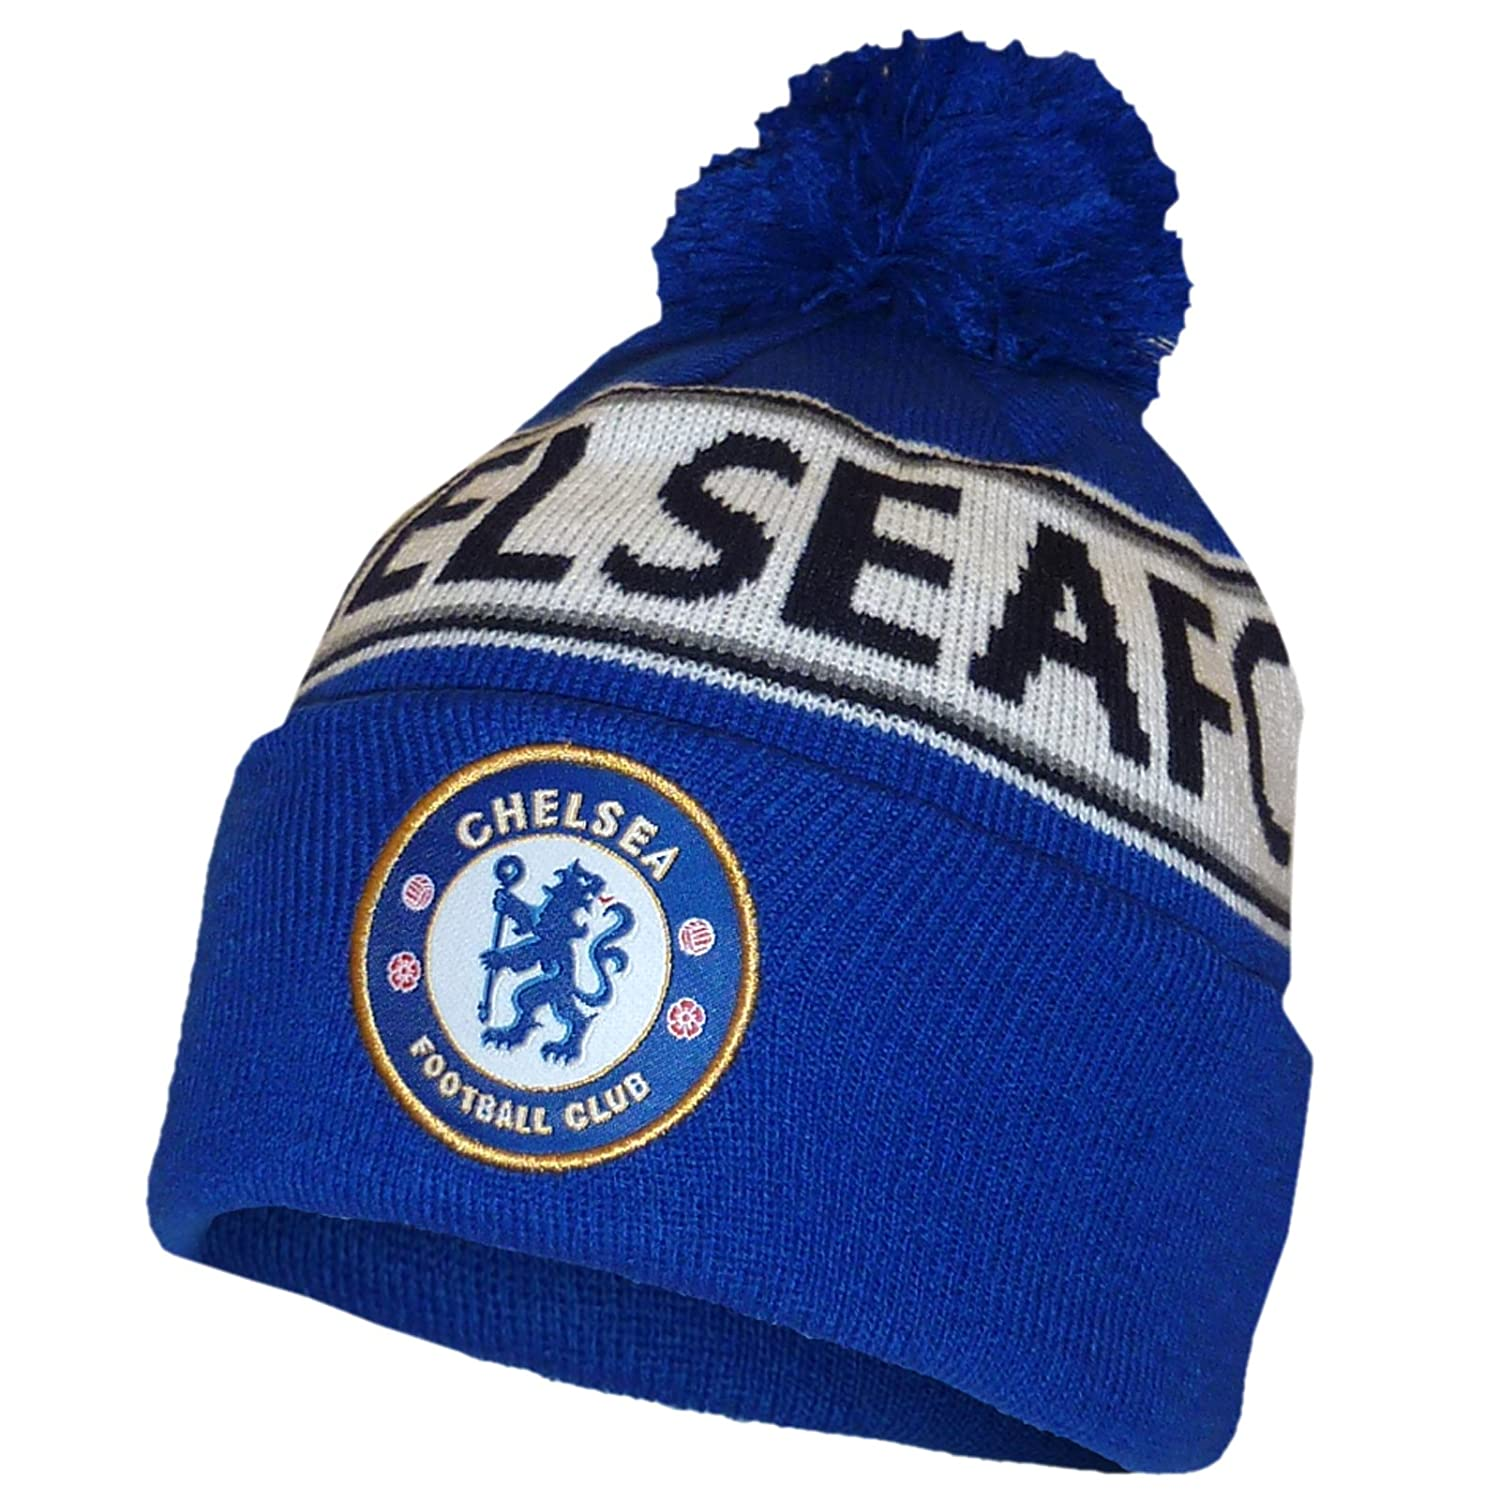 023b6c13001 Chelsea F.C. Knitted Bobble Hat  Amazon.co.uk  Sports   Outdoors